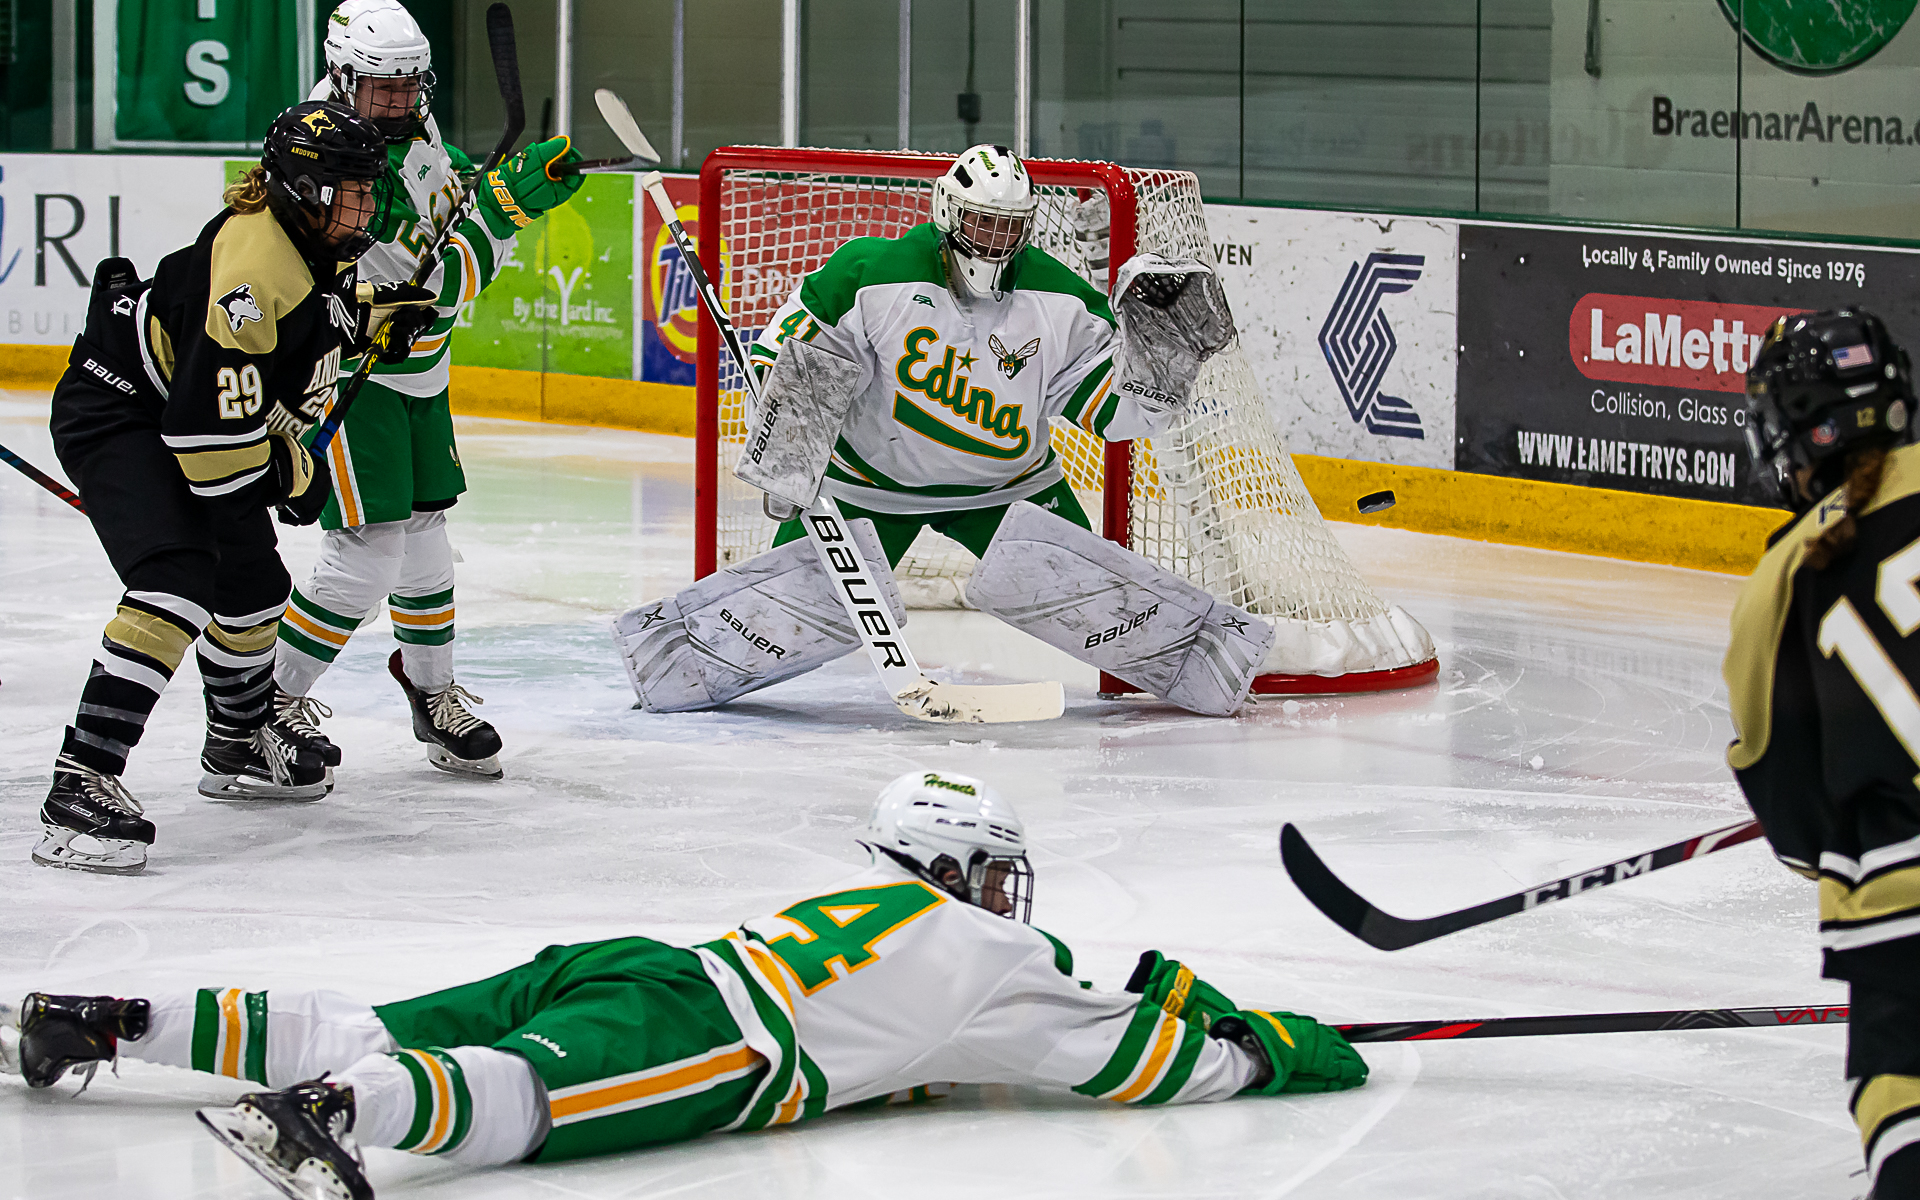 Tough defense by both Andover and Edina created early season excitement as the Huskies earned a 1-0 victory over the Hornets at Braemar Thursday night. Photo by Gary Mukai SportsEngine